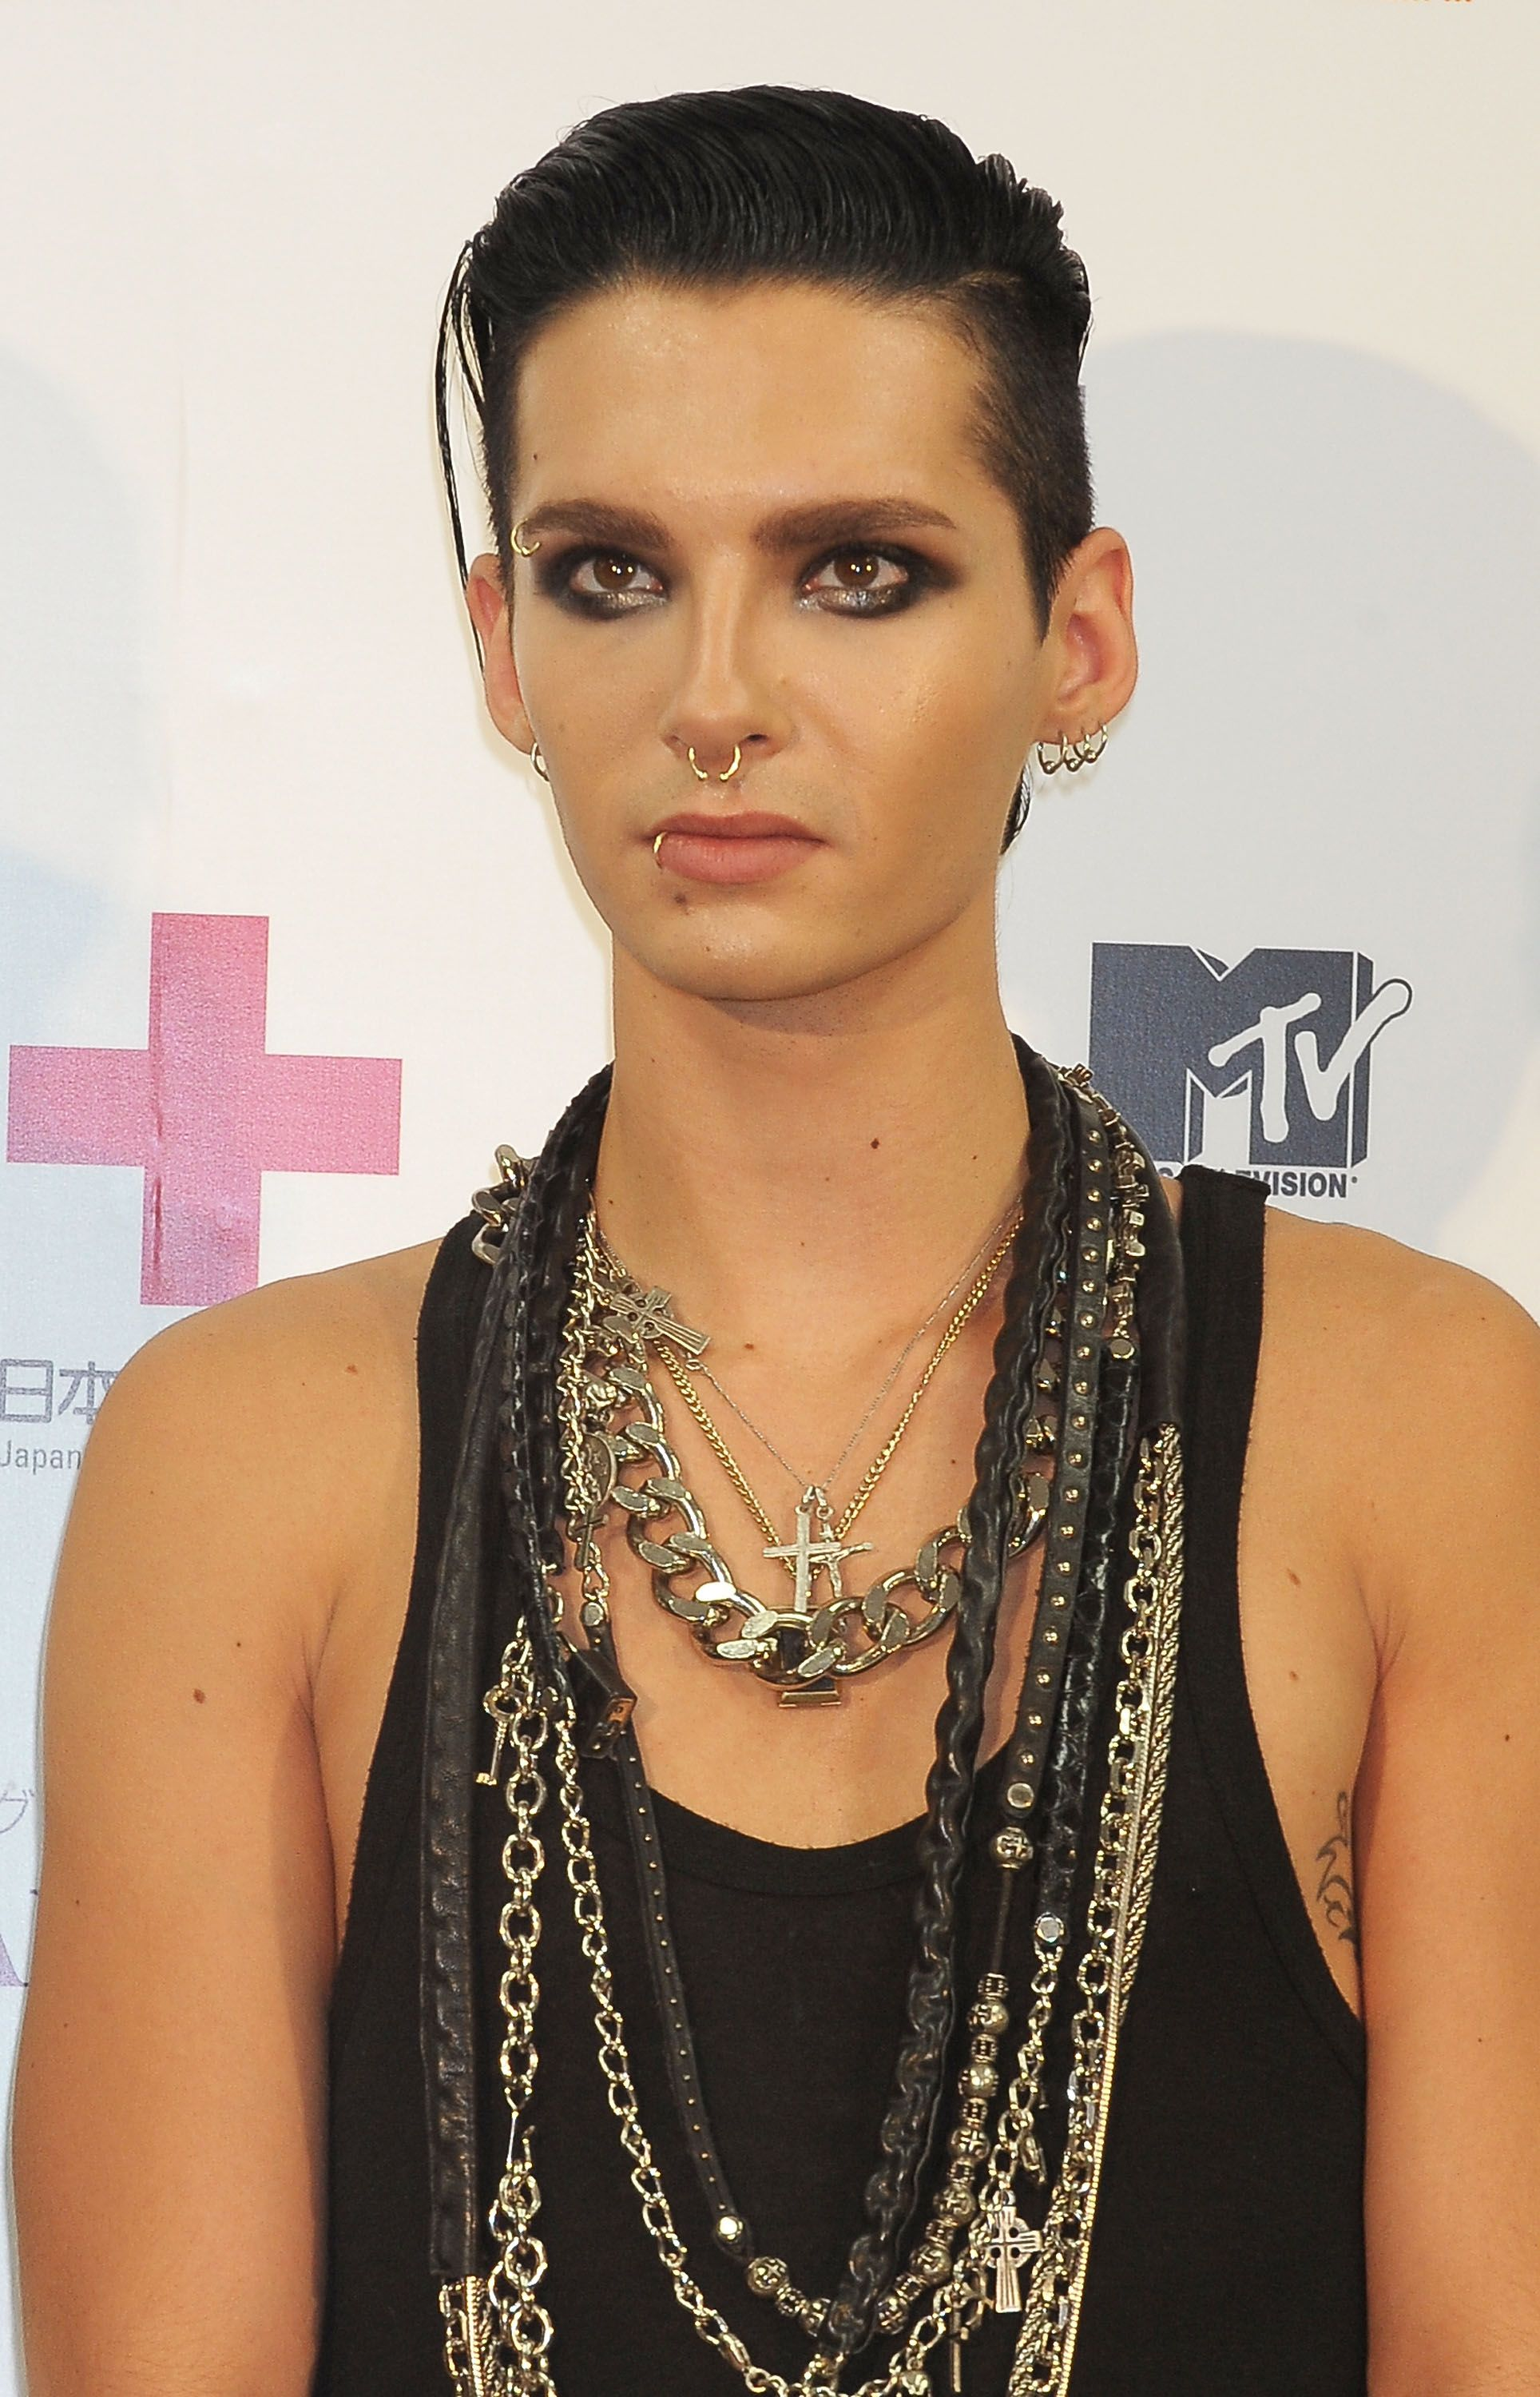 BILL KAULITZ FREE Wallpapers & Background images - hippowallpapers.com